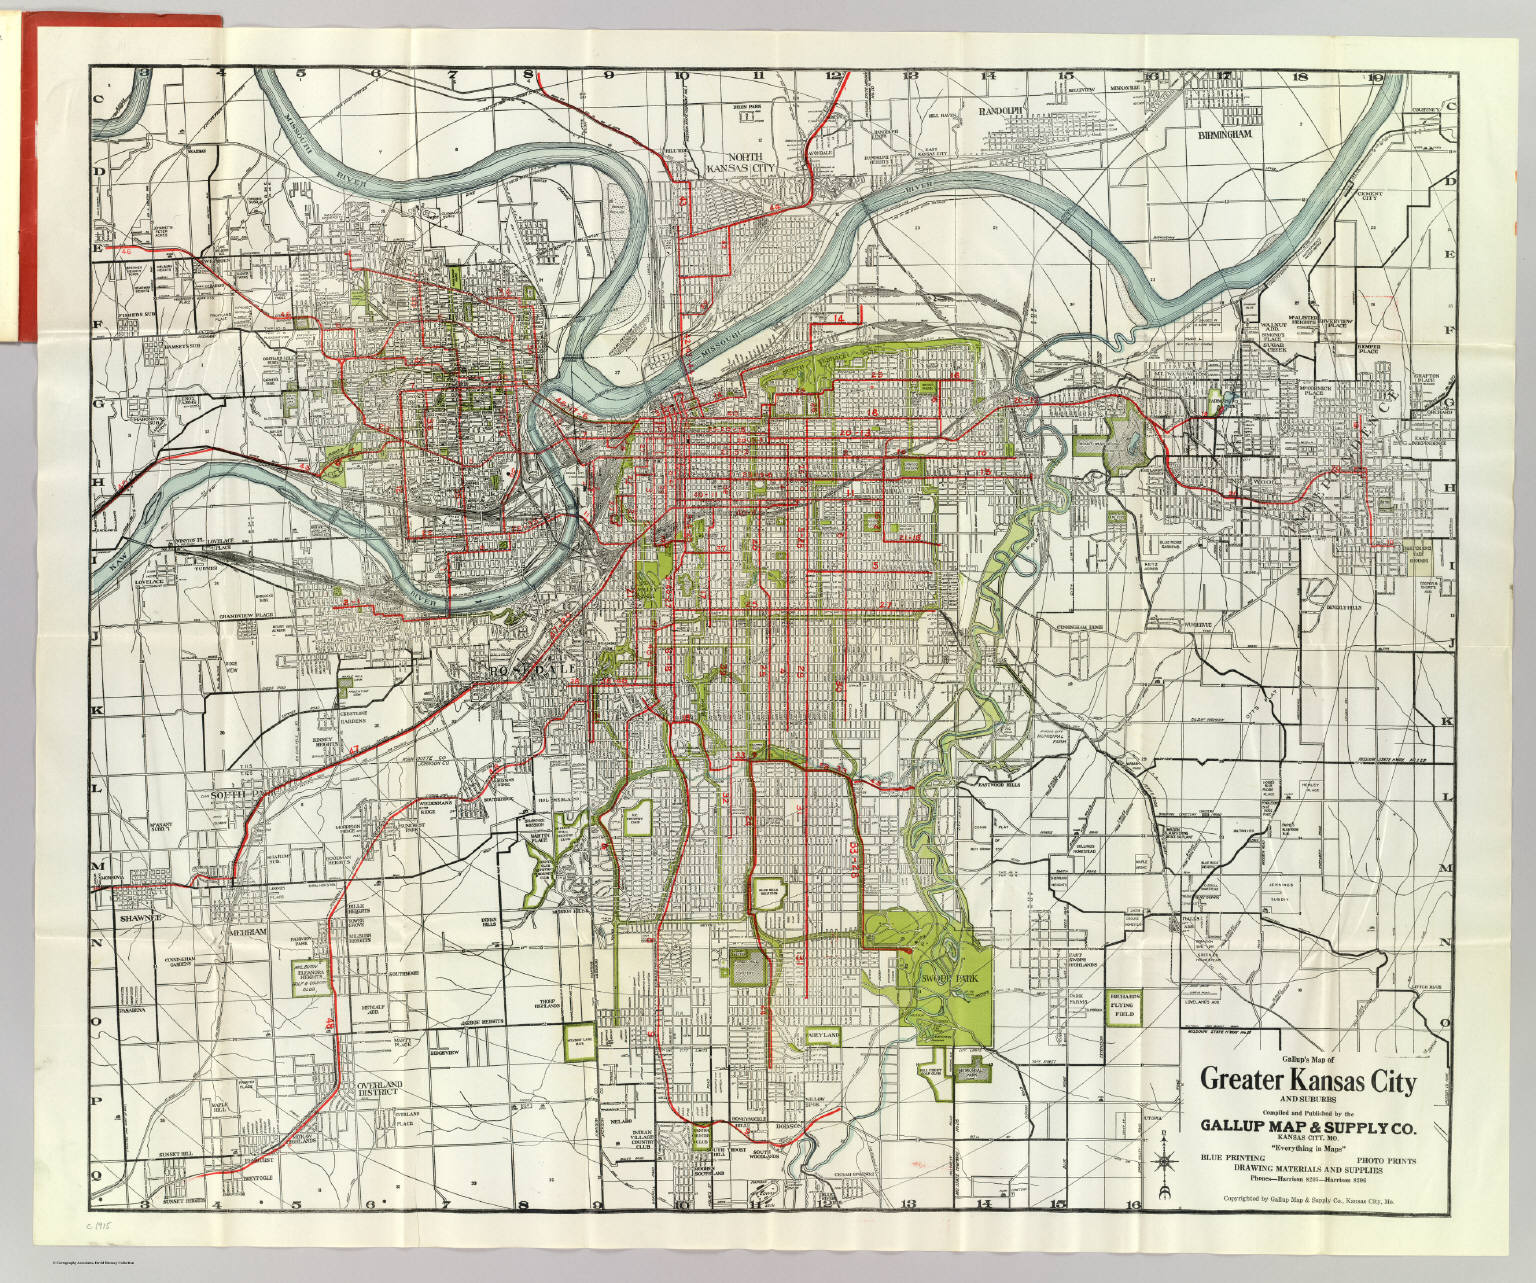 Kansas City Streetcar Map Greater Kansas City. / Gallup Map & Supply Company / 1920 Kansas City Streetcar Map